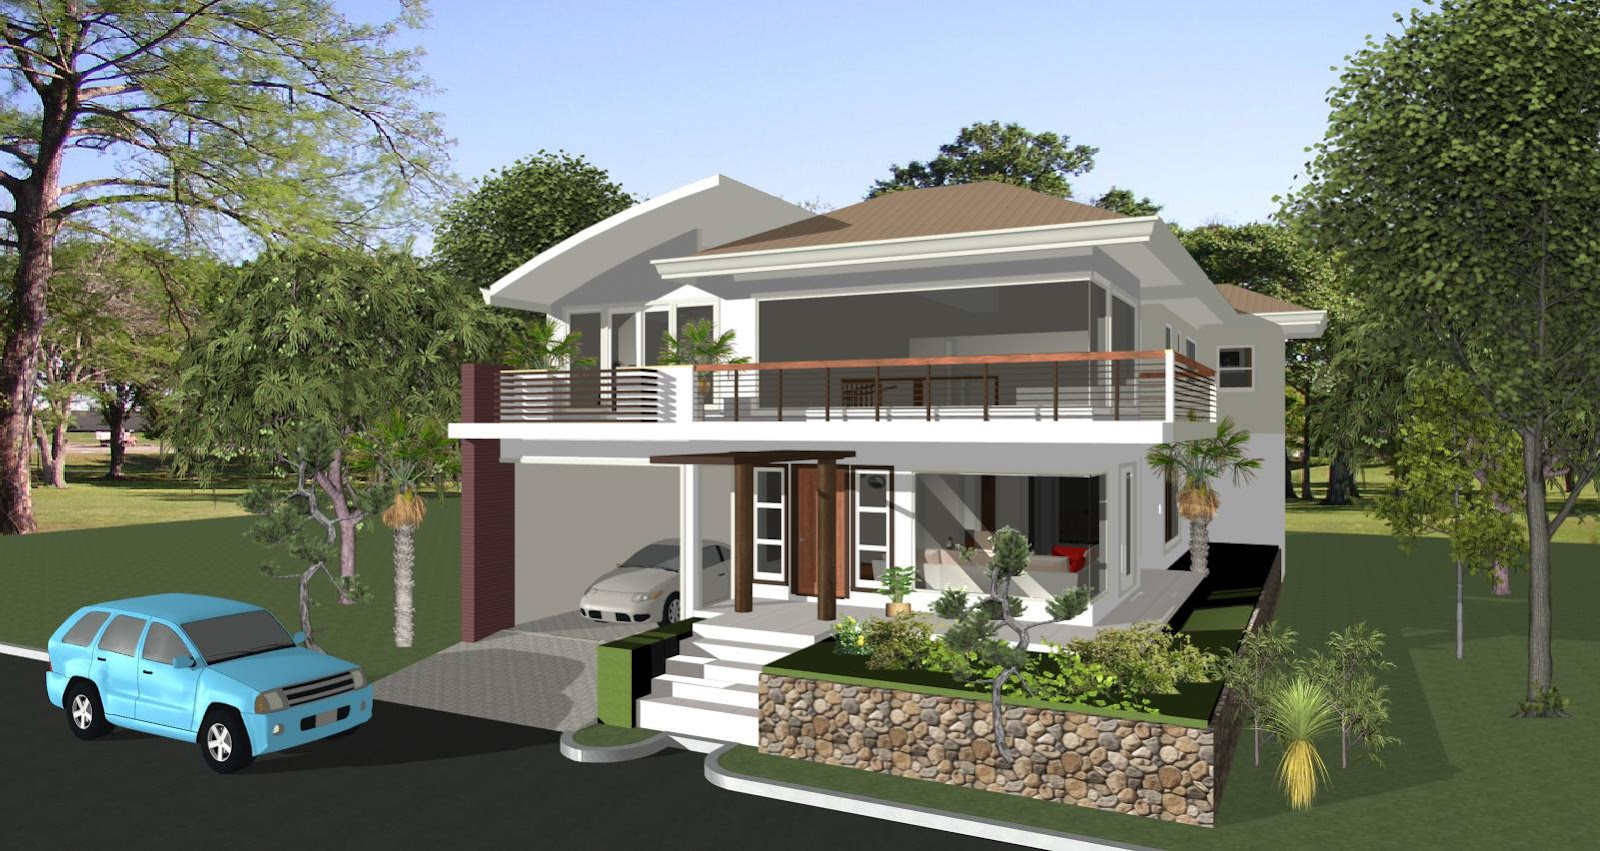 House designs philippines architect bill house plans for Latest house designs